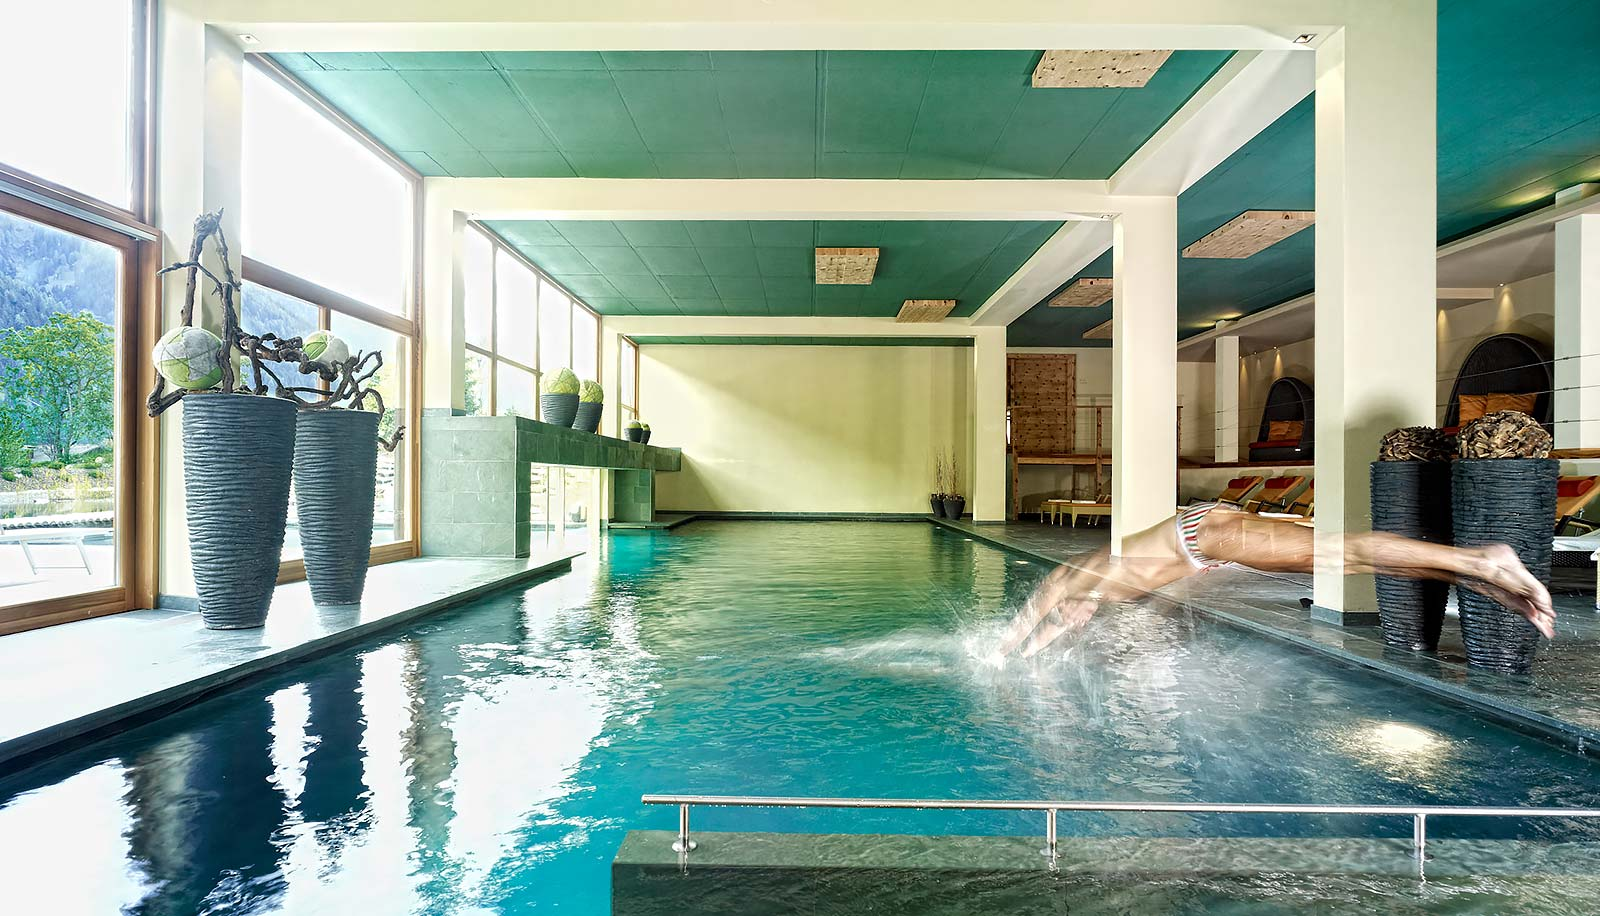 Swimmer jumping into the indoor pool at Arosea Life Balance Hotel in Ultental-Val d'Ultimo